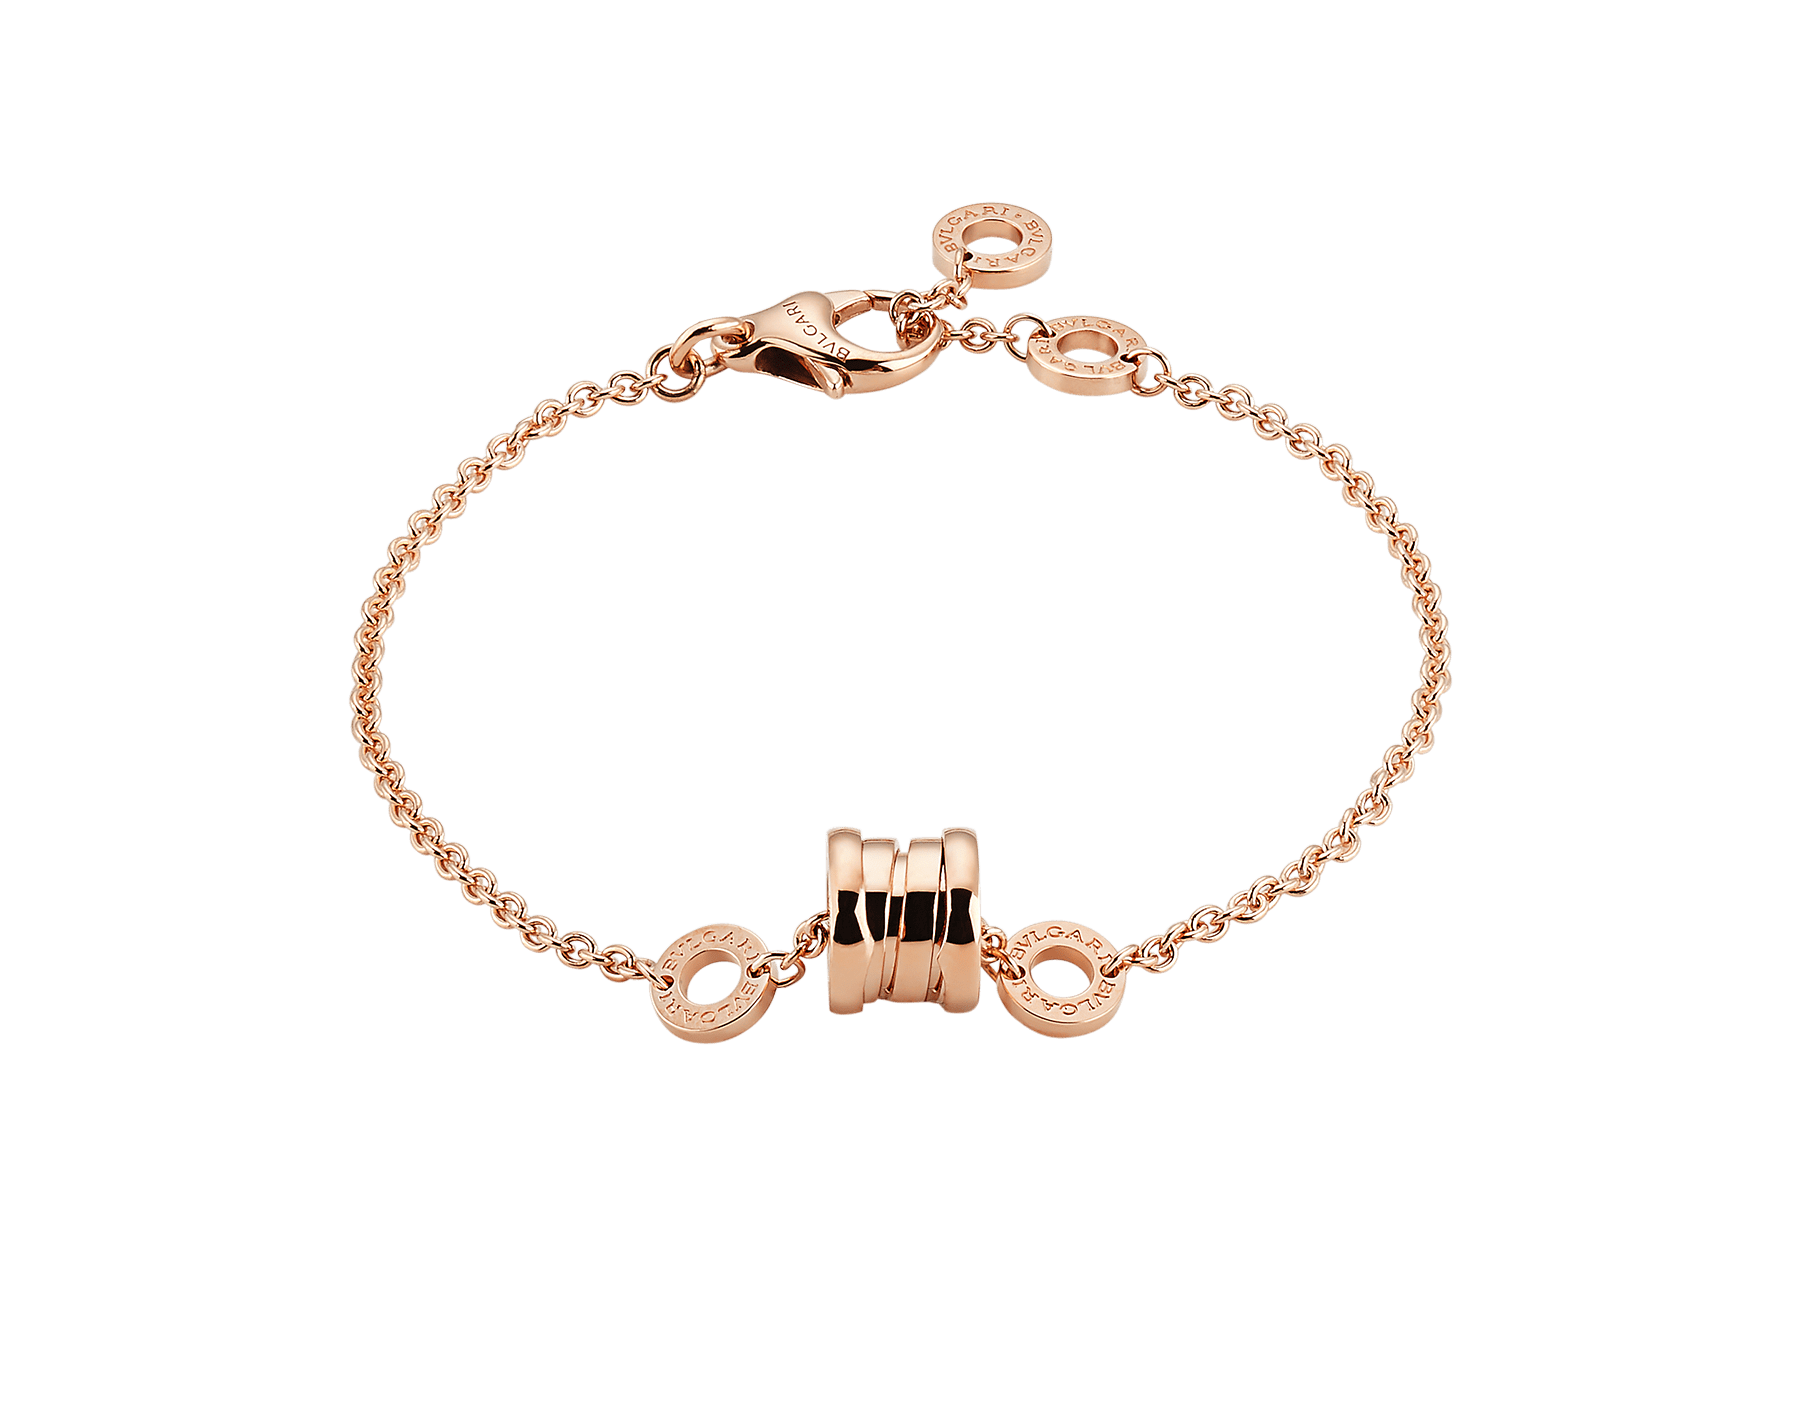 B.zero1 soft bracelet in 18 kt rose gold. BR857254 image 1